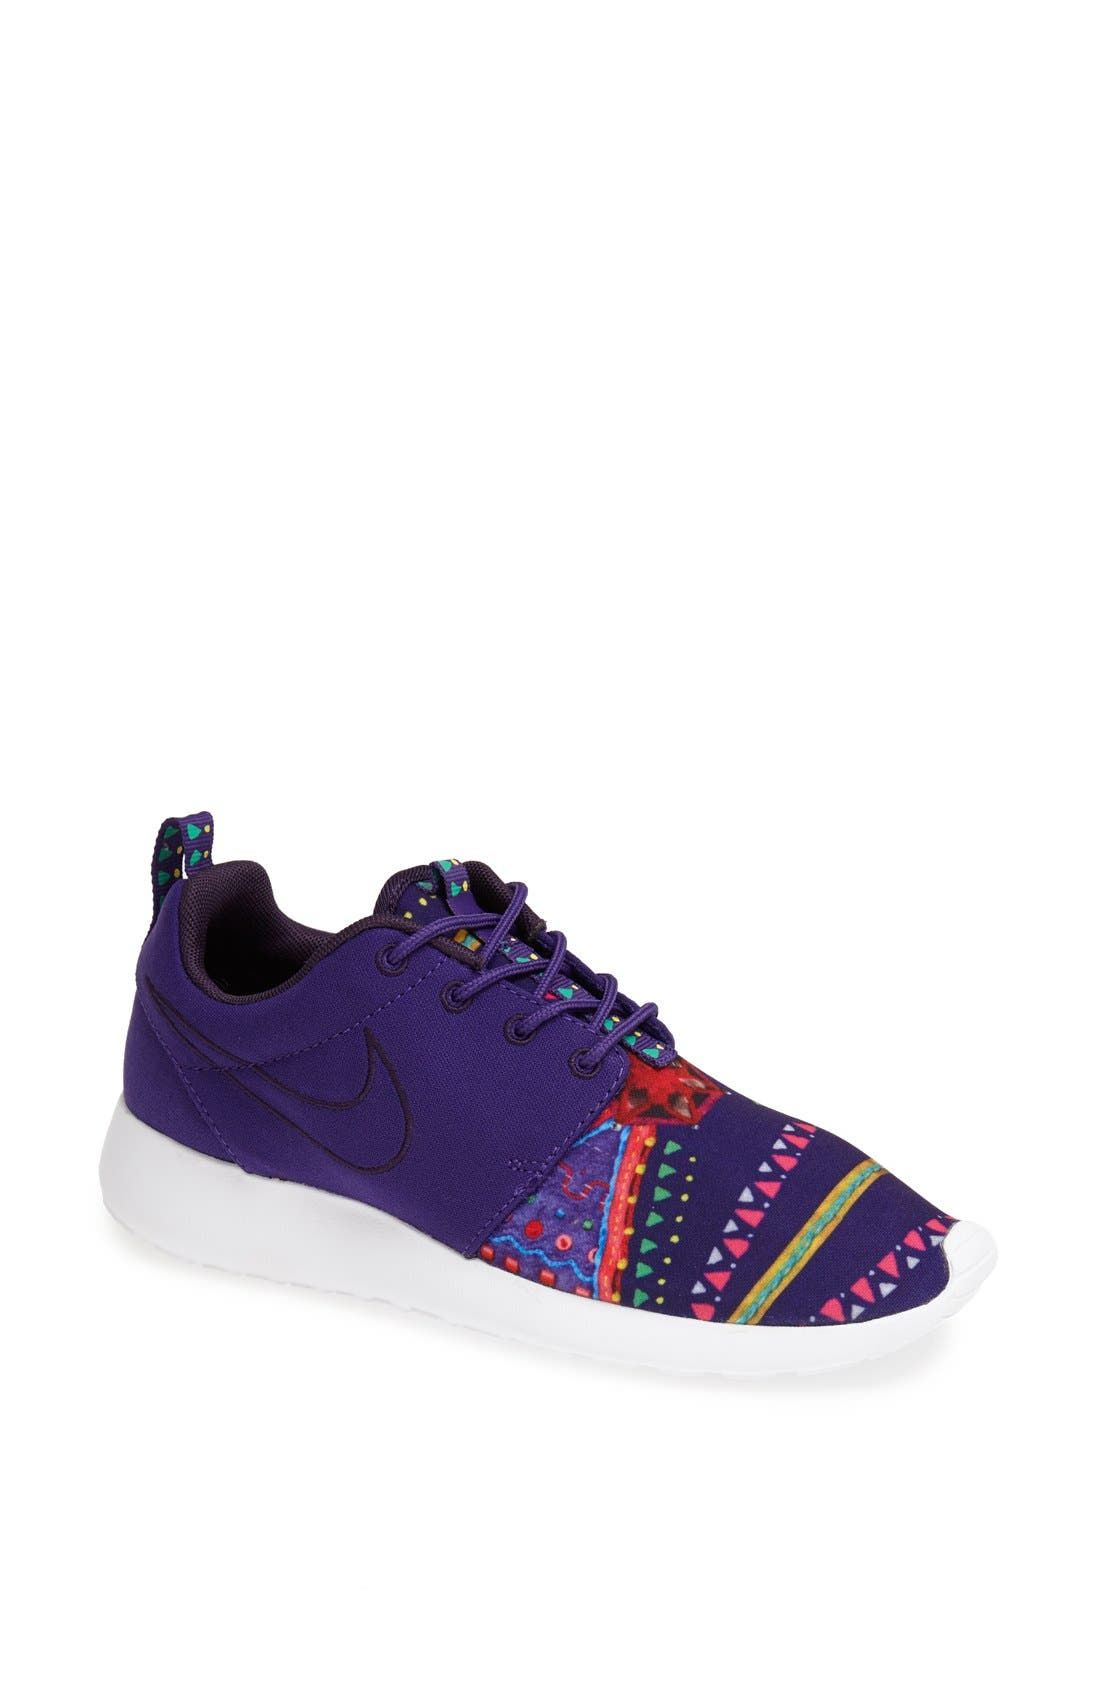 Alternate Image 1 Selected - Nike 'Roshe Run MP QS' Print Sneaker (Women)